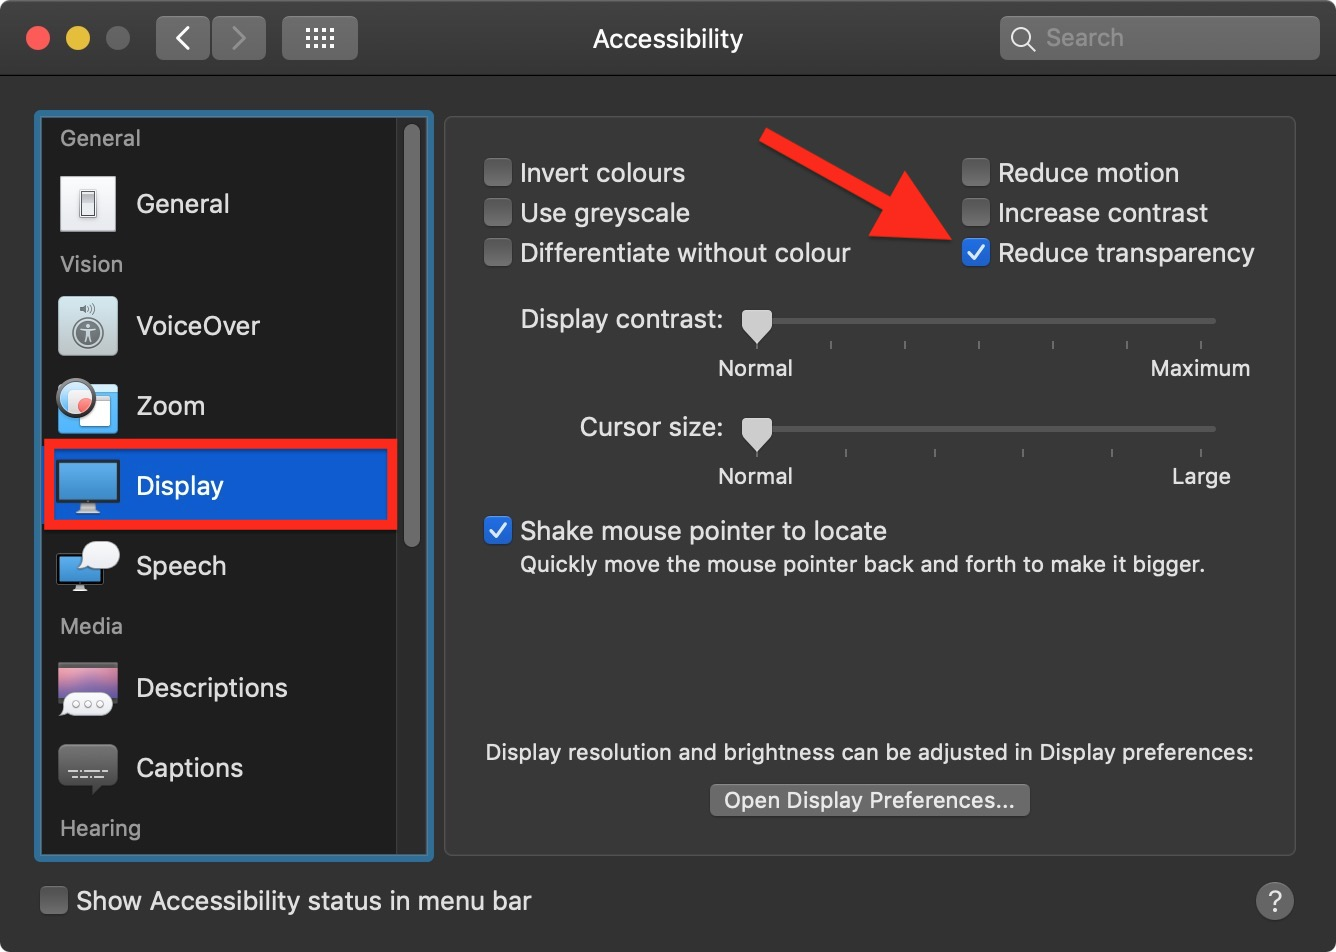 How to Disable Transparency Effects in macOS Mojave - MacRumors